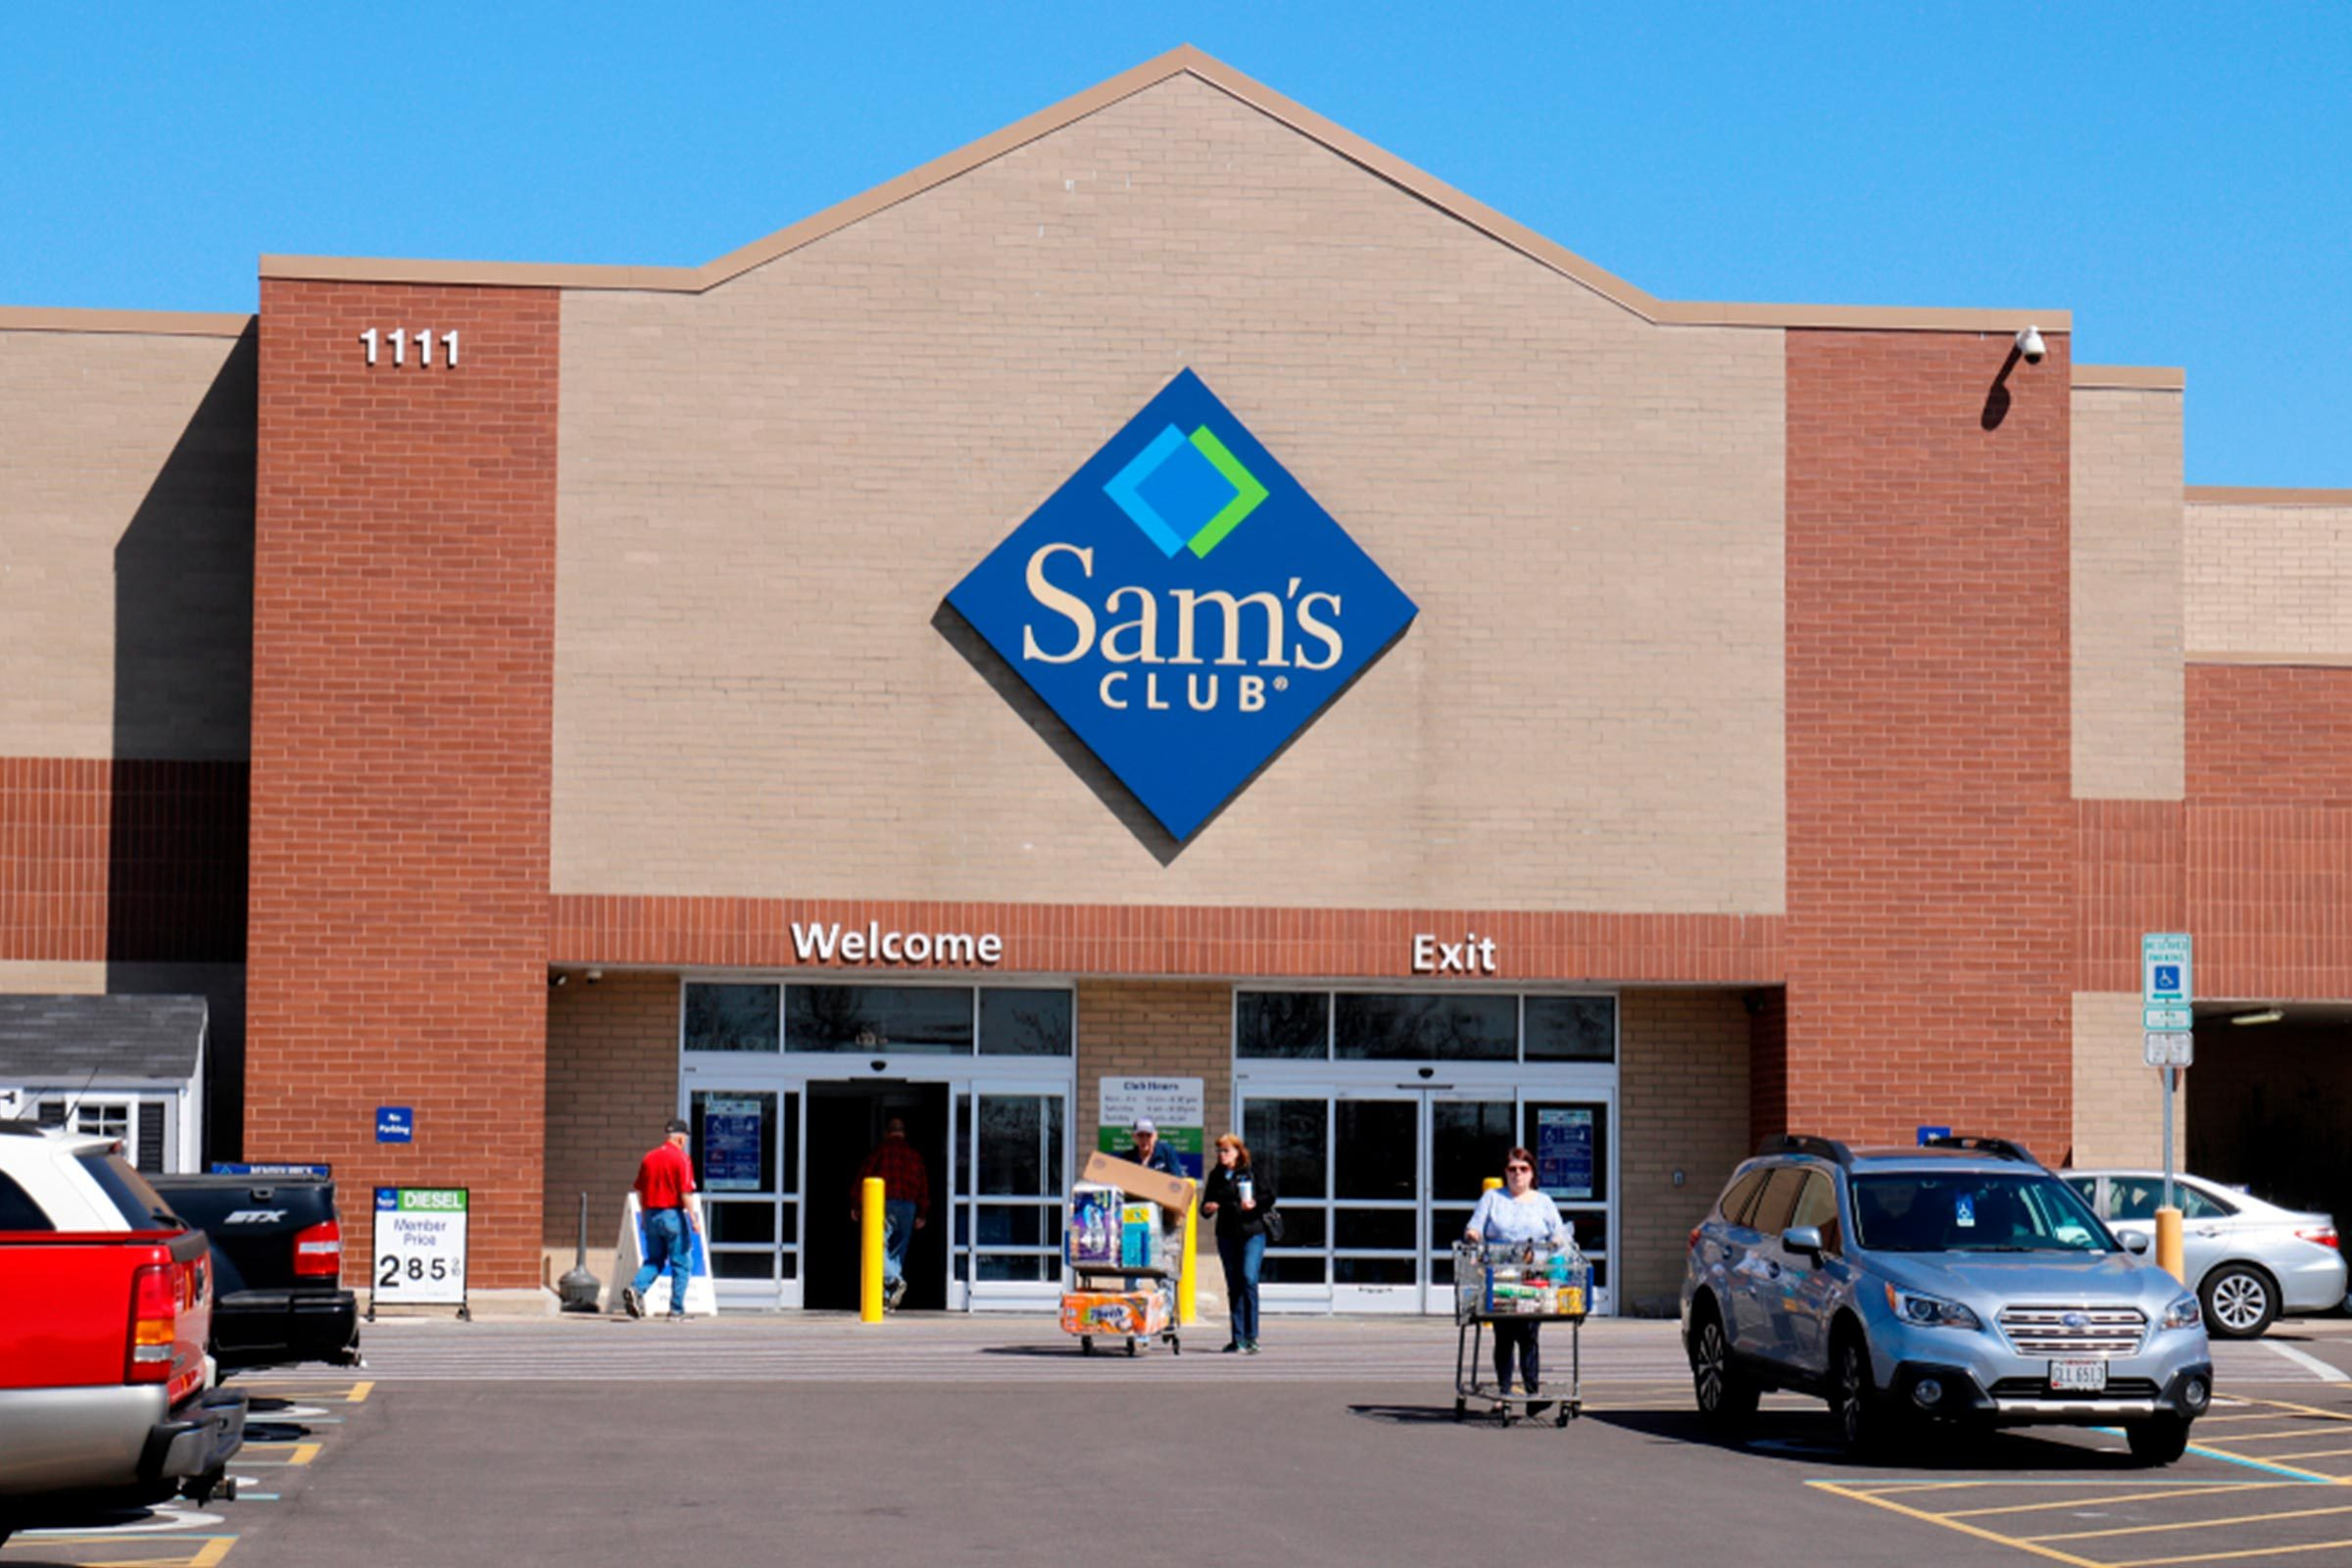 Deciding whether to join Costco or Sam's Club is no small task. Both warehouse giants offer an array of discounted goods and services including grocery items, prescription medications, electronics, automotive supplies and services, and more. Both also promise exceptional deals compared with .